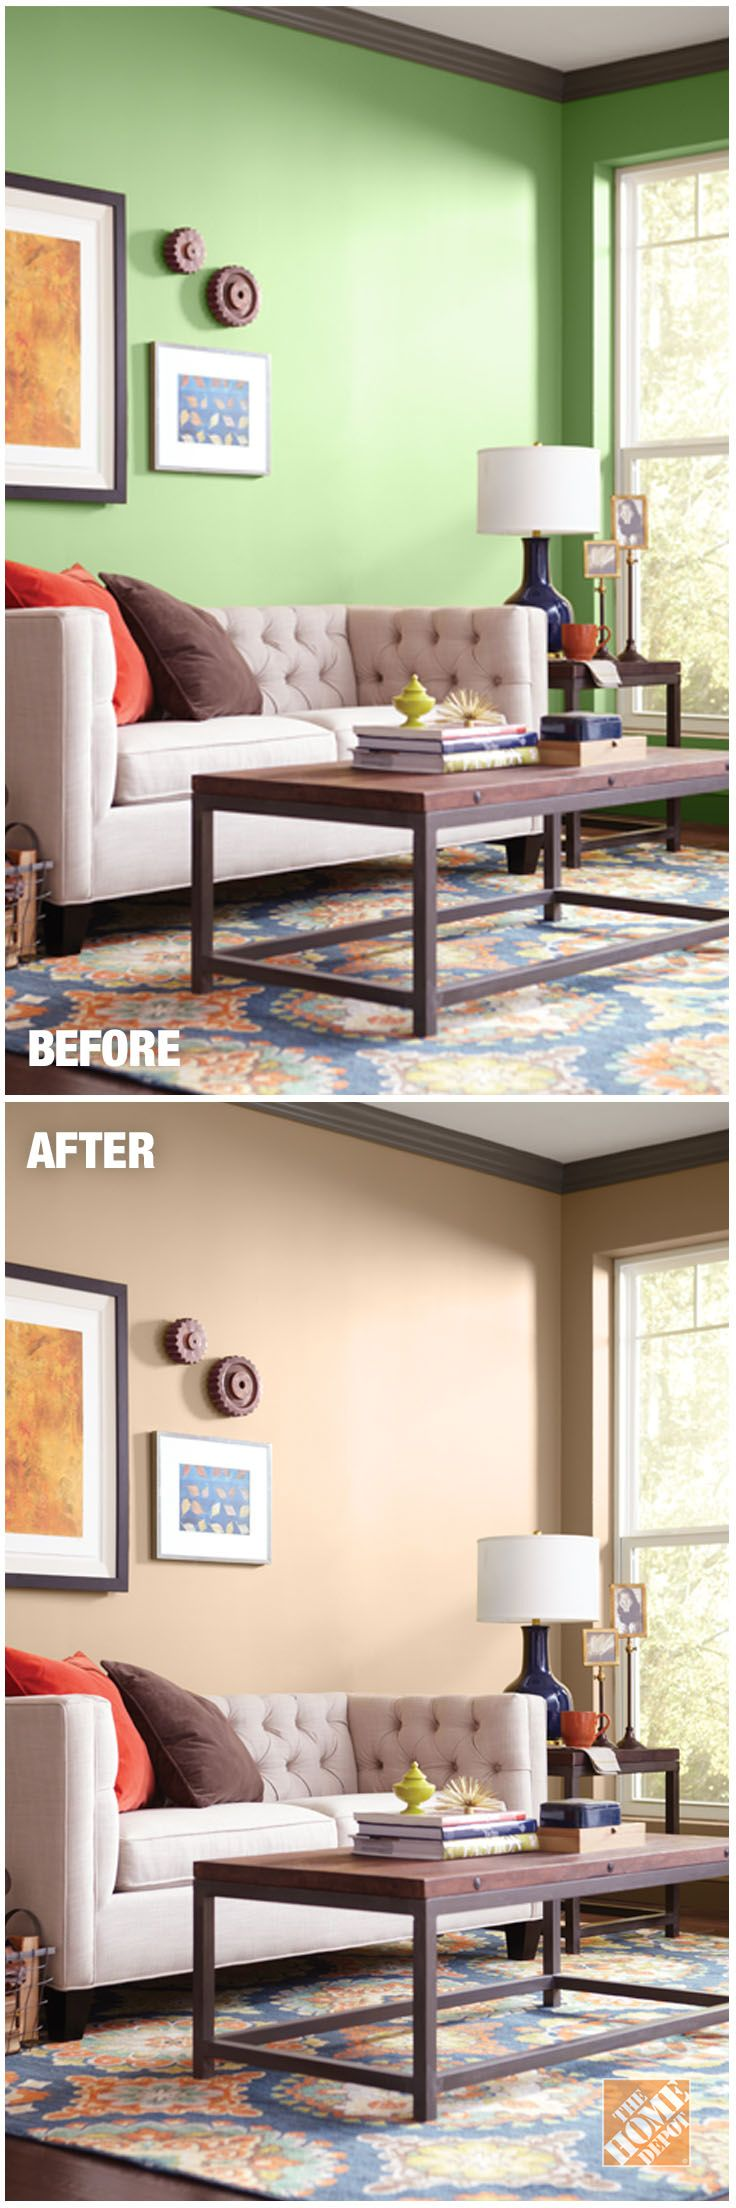 behr paint can give a room a whole new look explore on on home depot paint colors interior id=64606